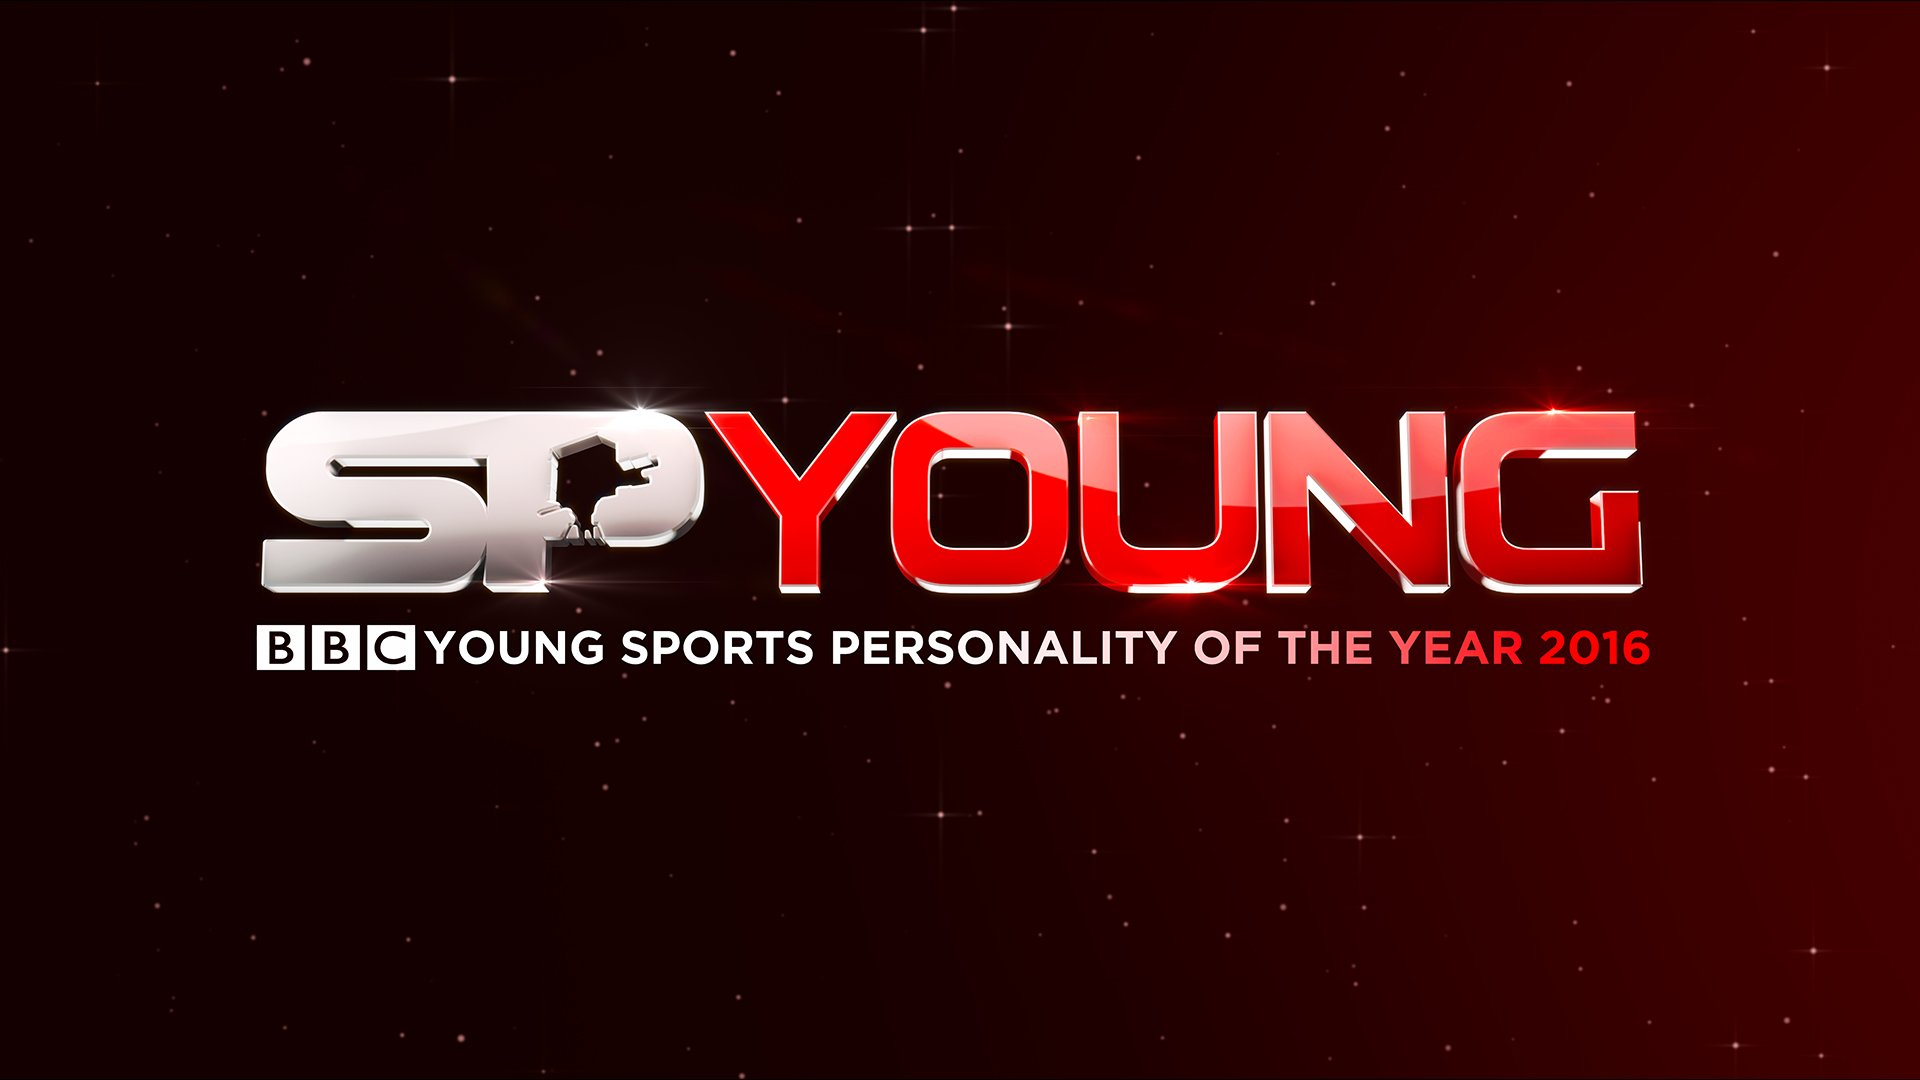 Who is your BBC Young Sports Personality of 2016?